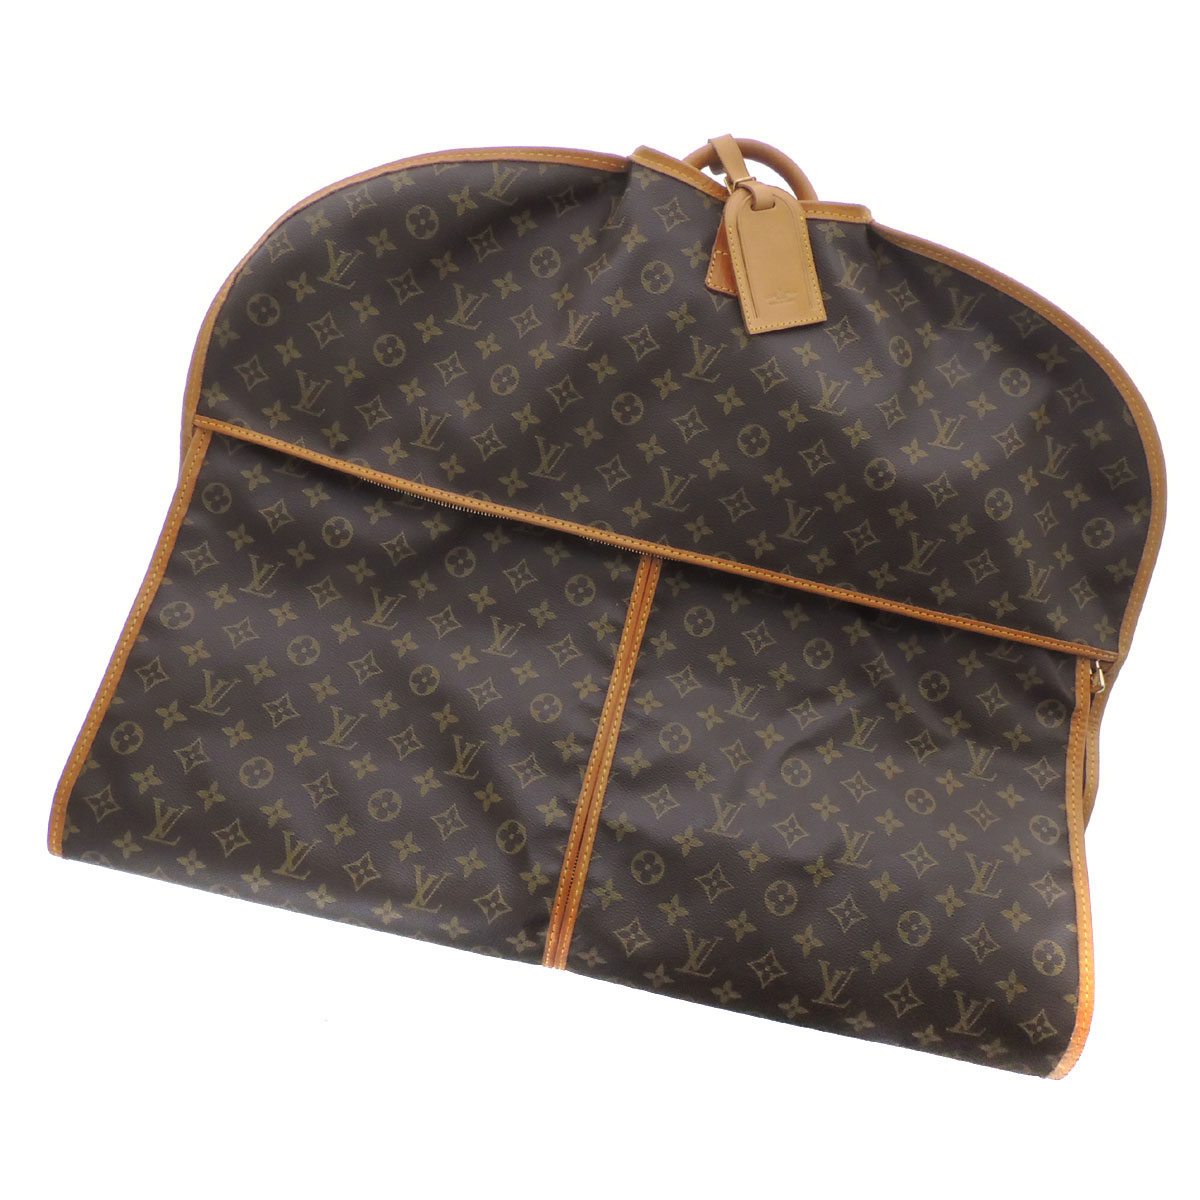 Image Result For Louis Vuitton Prices